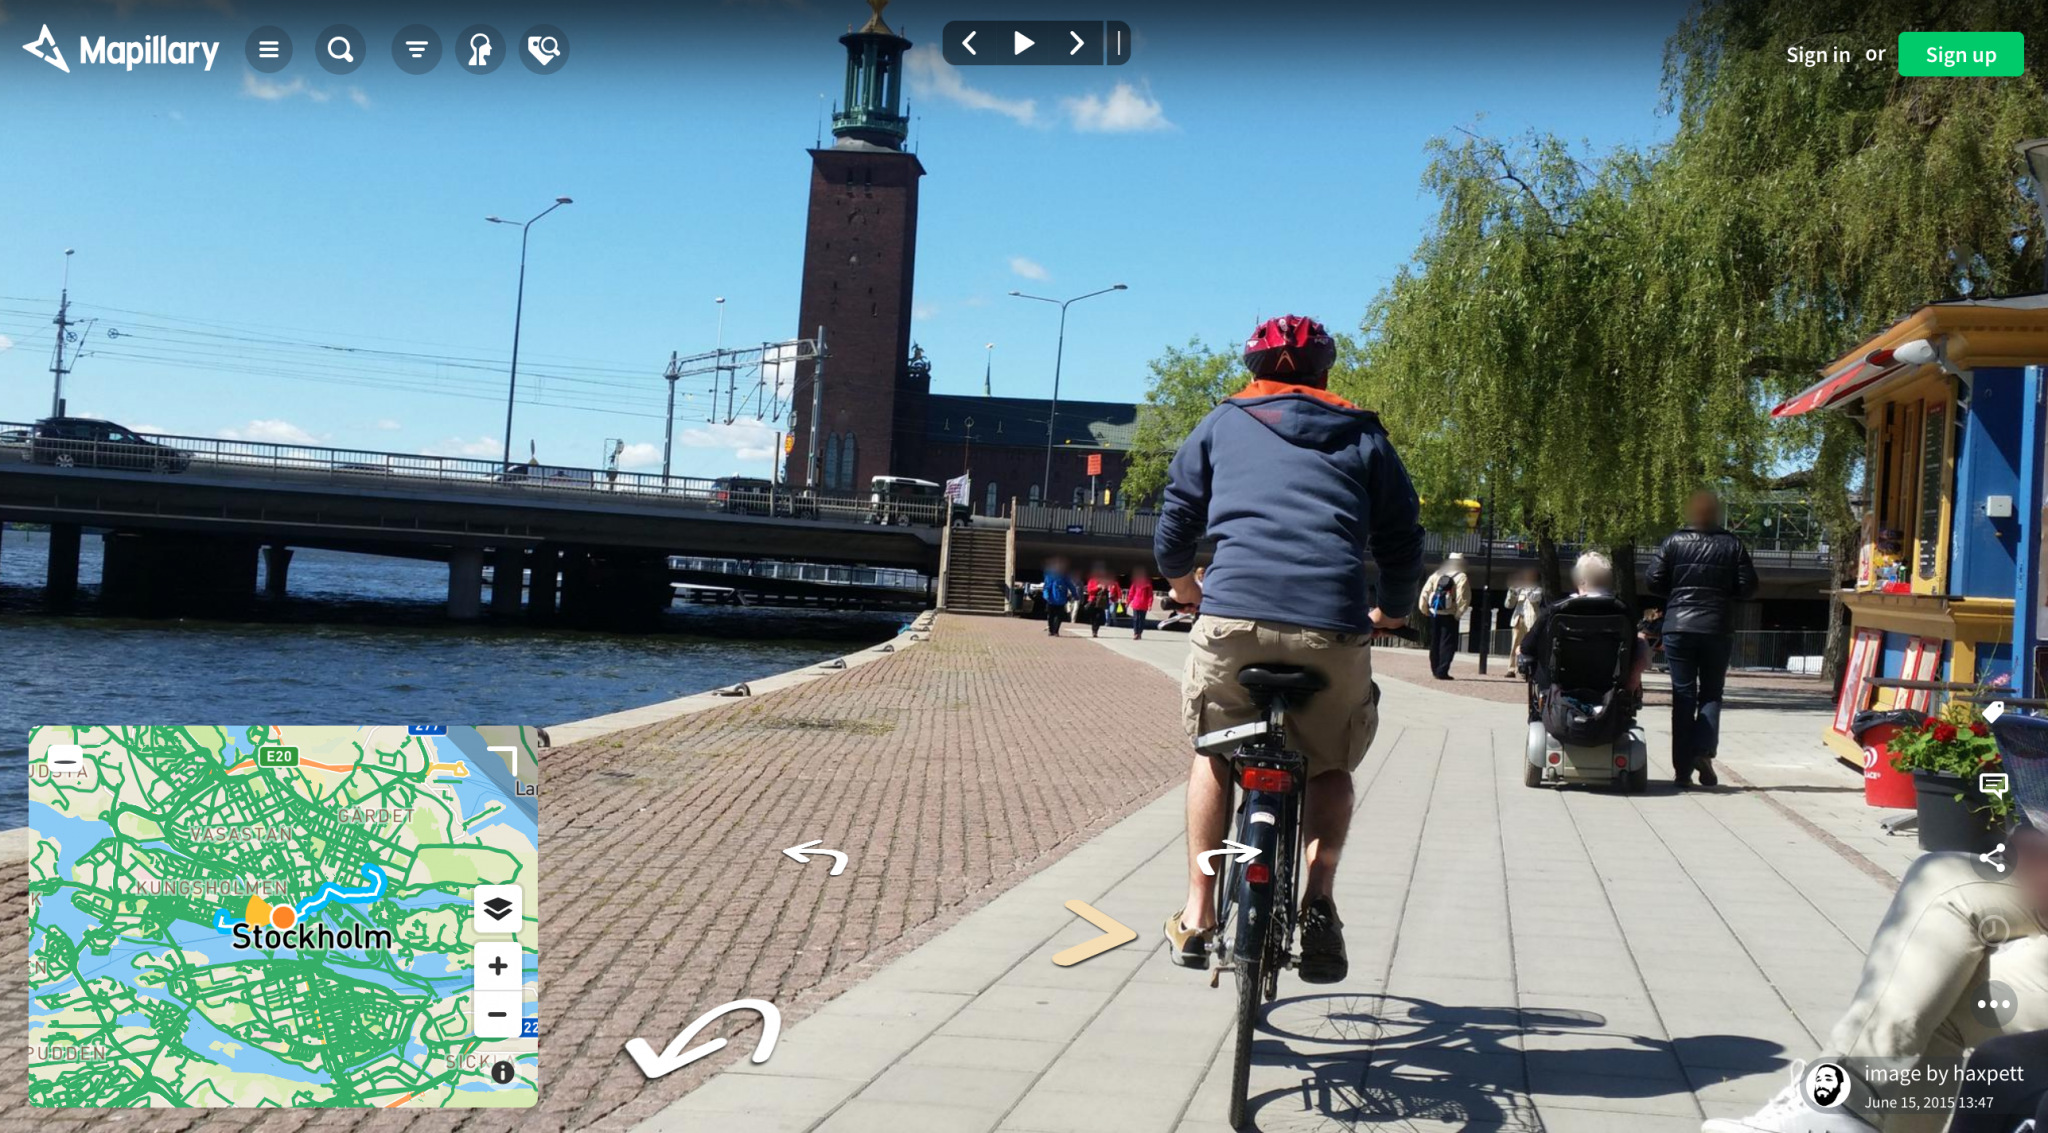 Image from one of the cycle paths in Stockholm, by a Mapillary user.